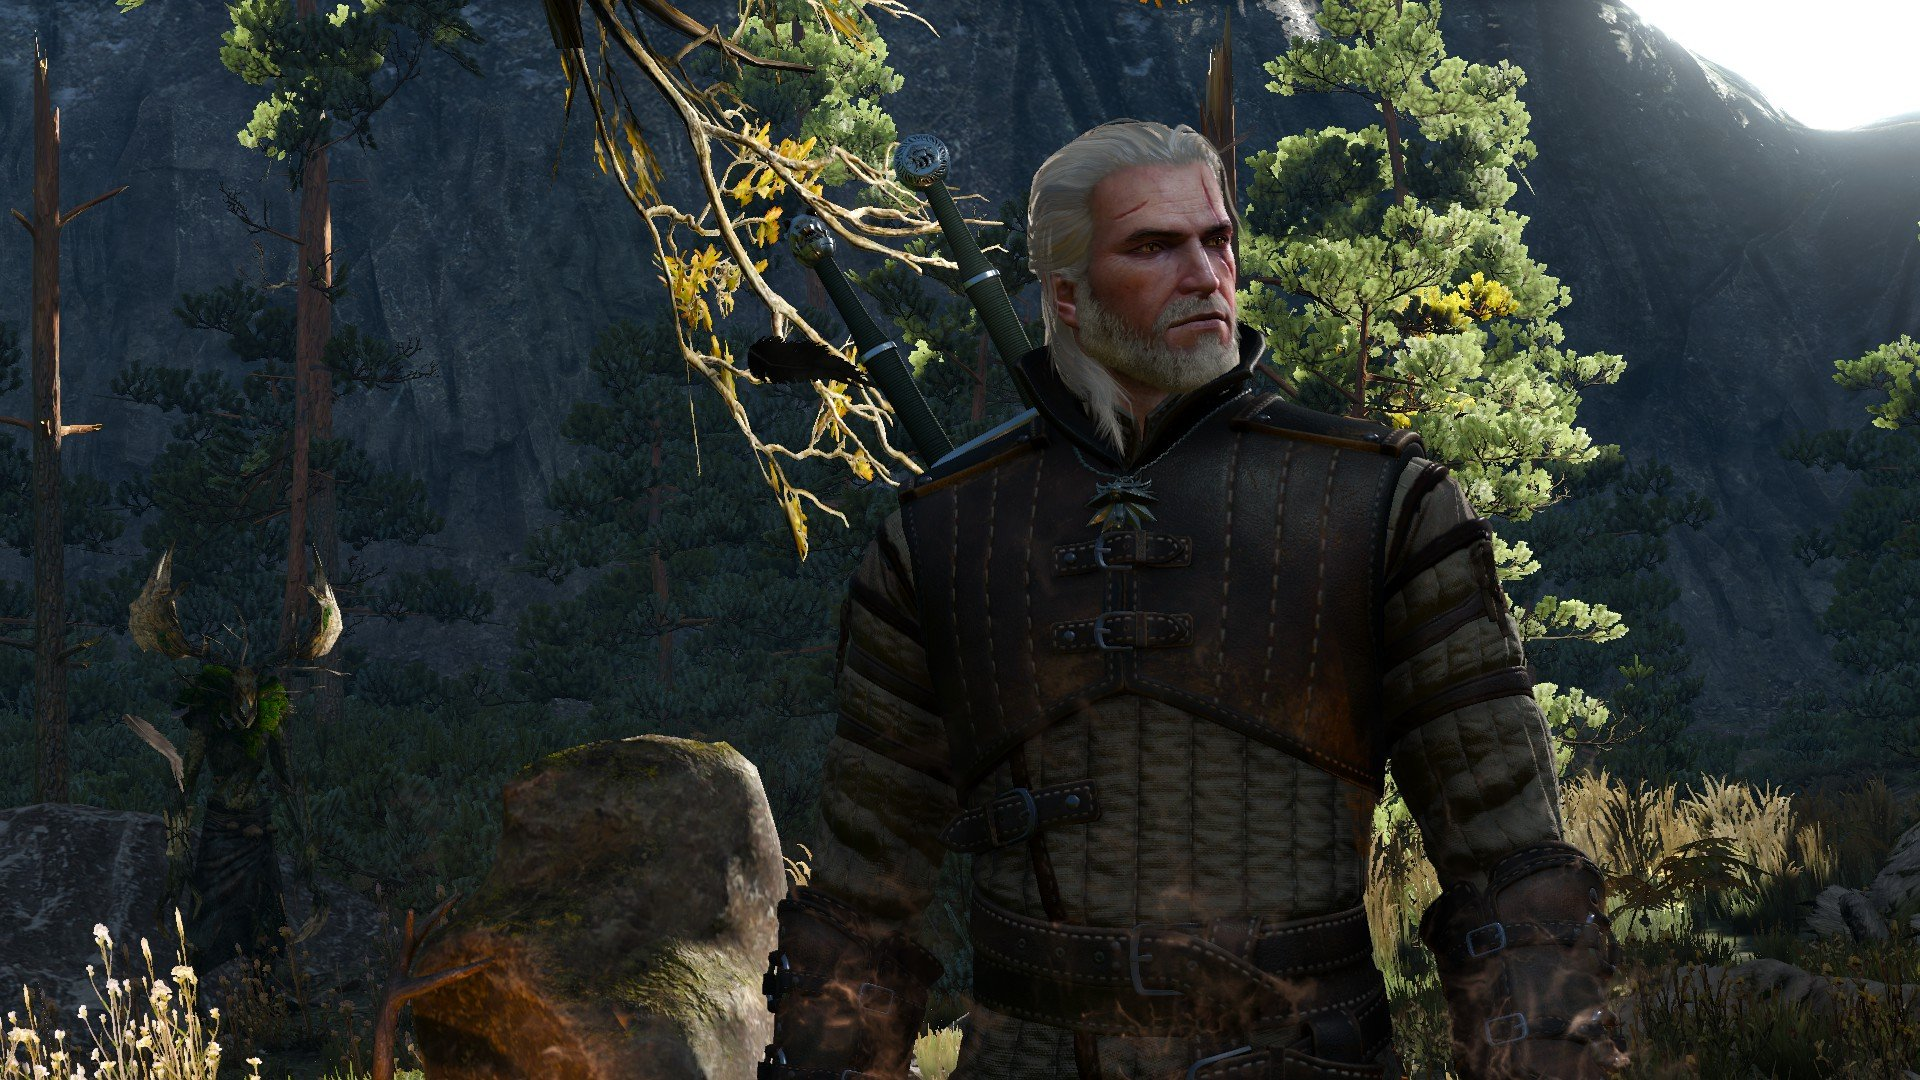 The Witcher 3: Wild Hunt. Патч 1.12.   CD Projekt RED опубликовали патч 1.12, со списком изменений которого вы може ... - Изображение 7